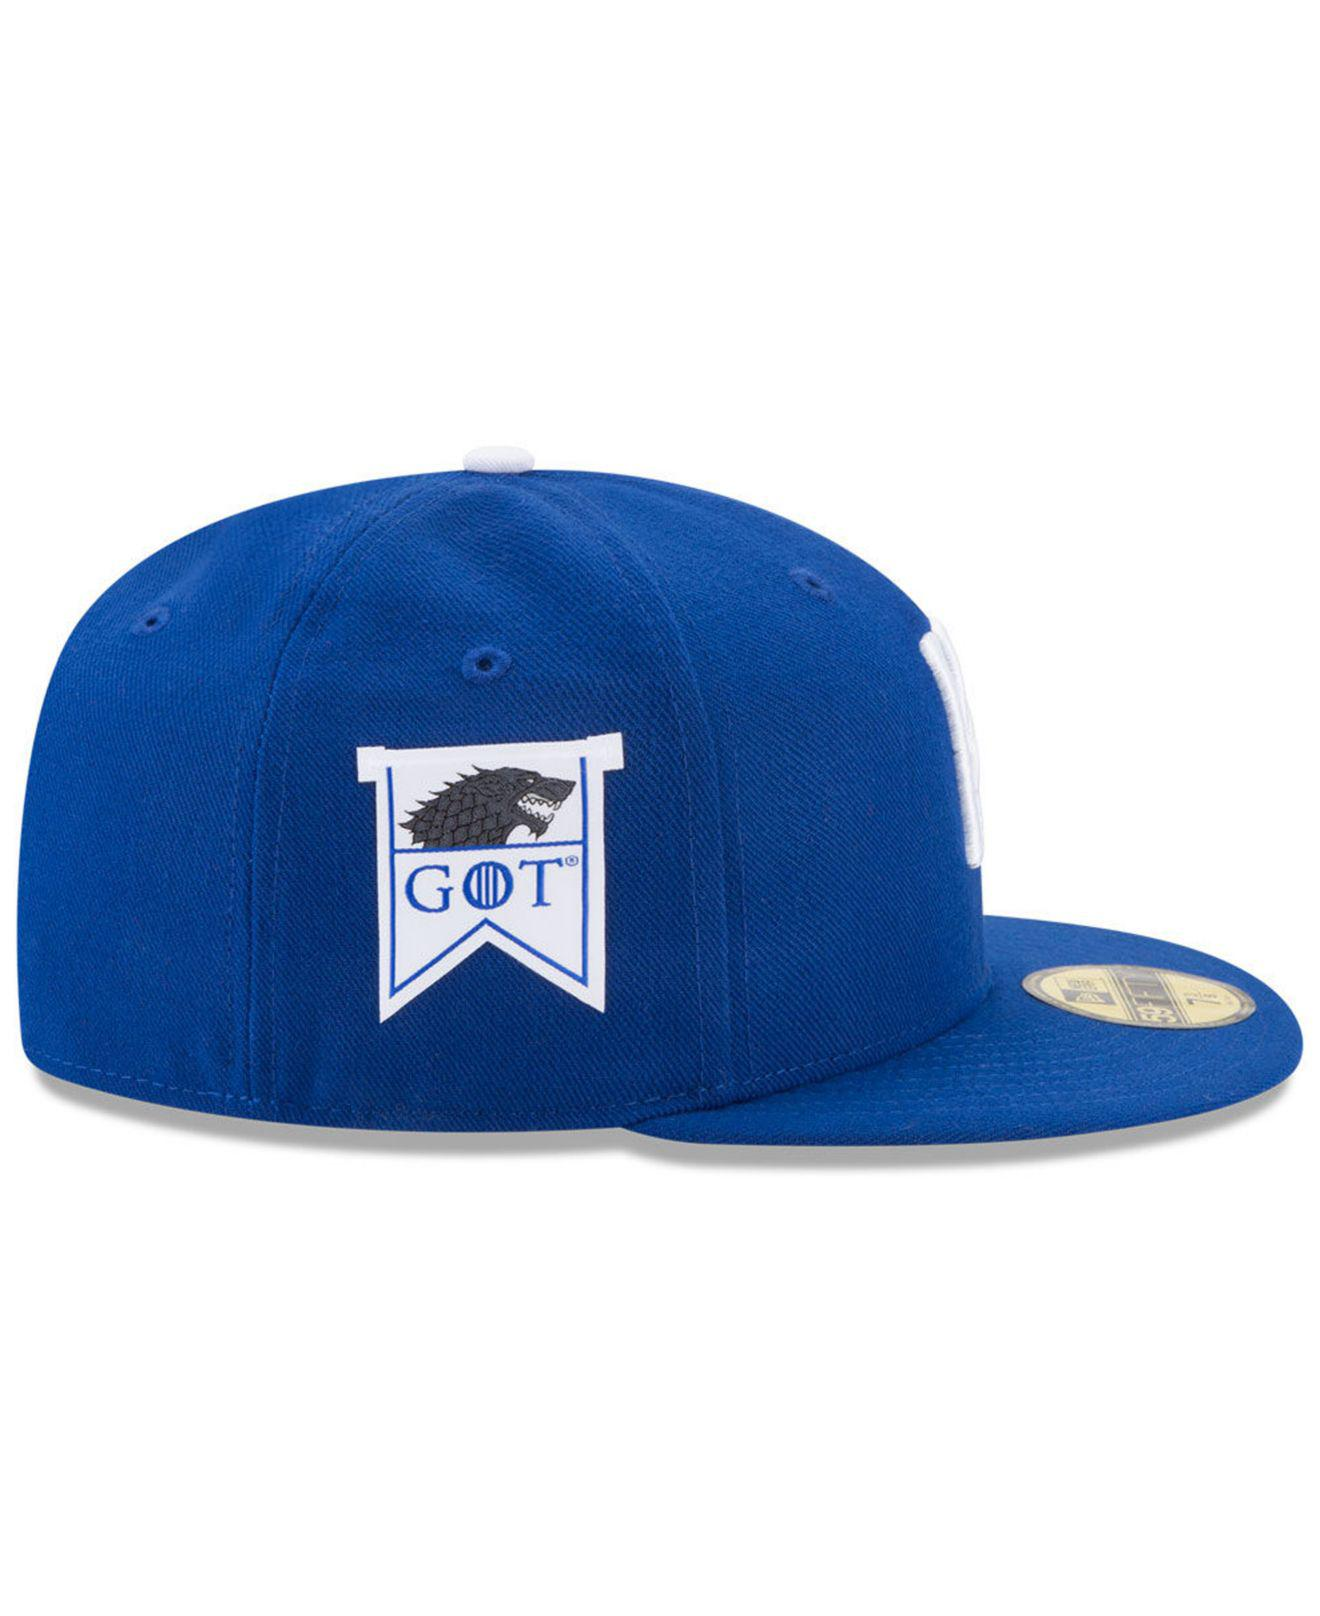 wholesale dealer c2de5 920ed Lyst - KTZ Game Of Thrones 59fifty Cap in Blue for Men